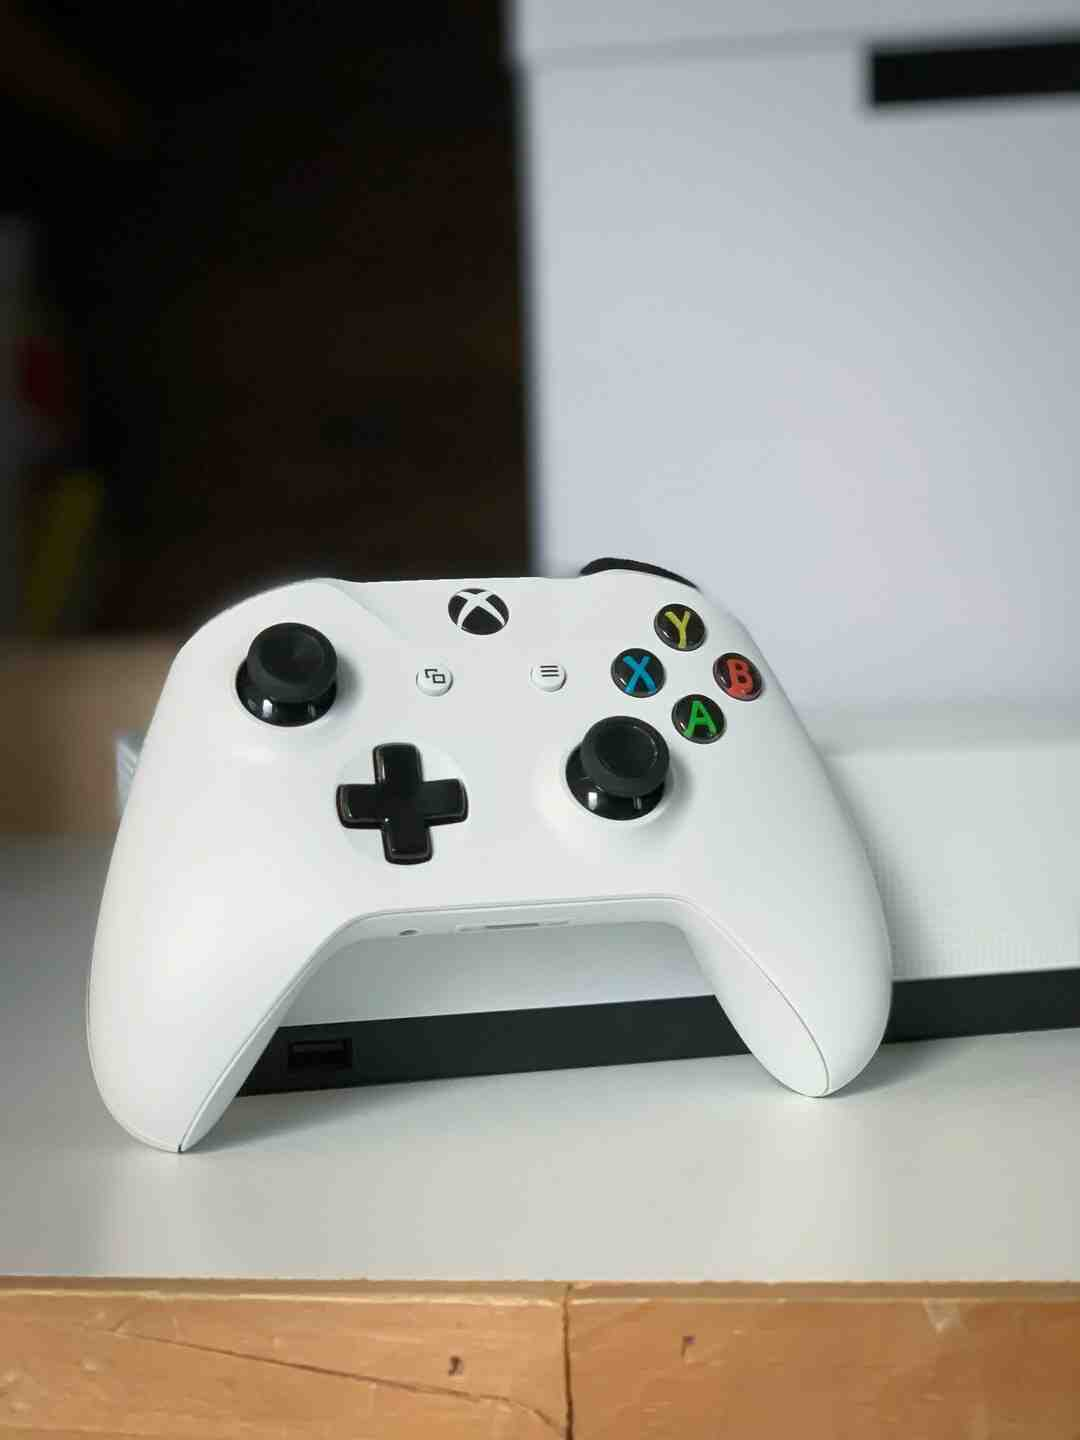 Comment streamer sur facebook xbox one